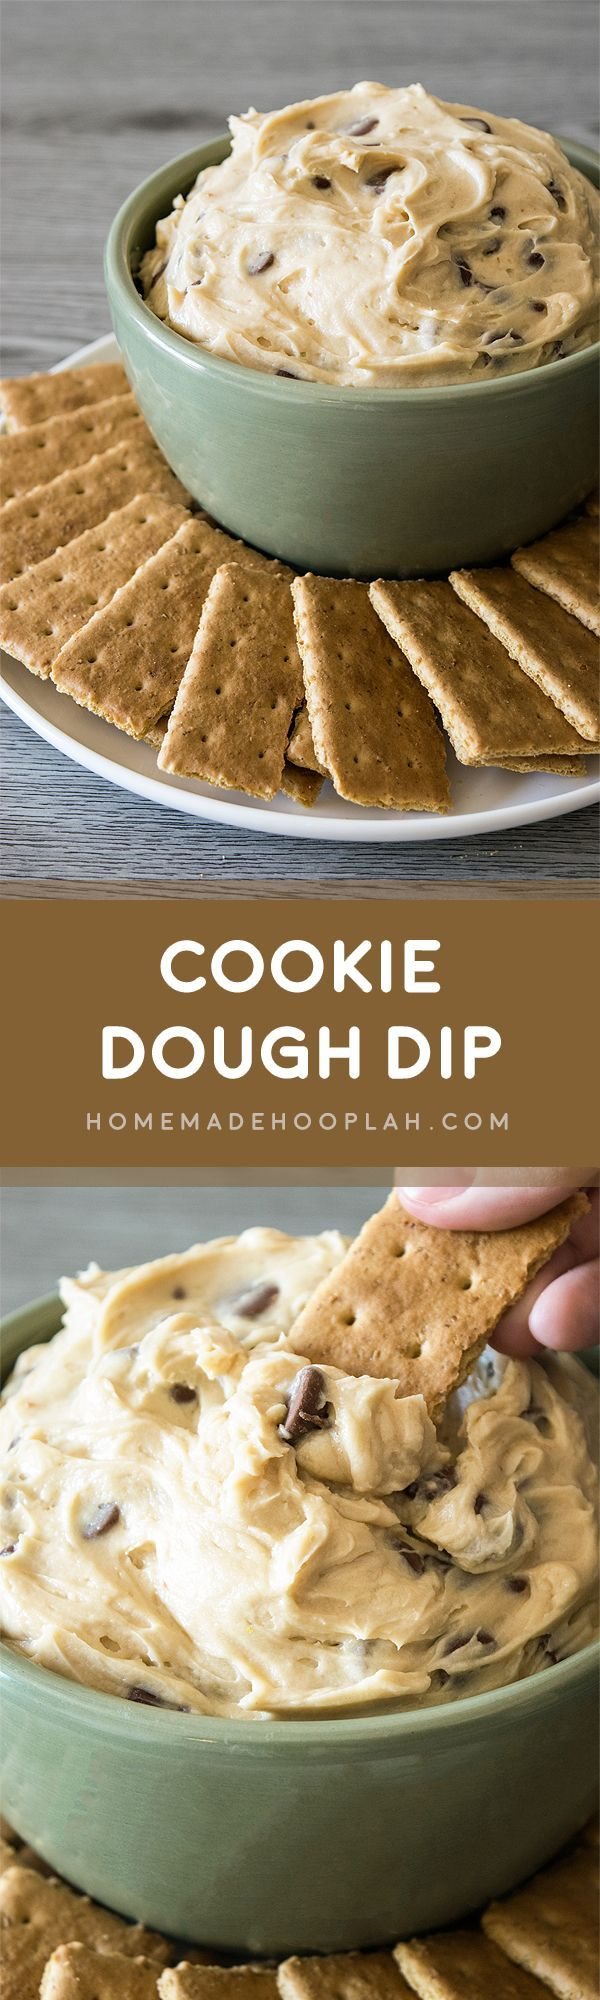 Cookie Dough Dip! Dazzle your guests by serving up dessert first with this ultra creamy cookie dough dip (eggless and no bake!) | HomemadeHooplah.com: